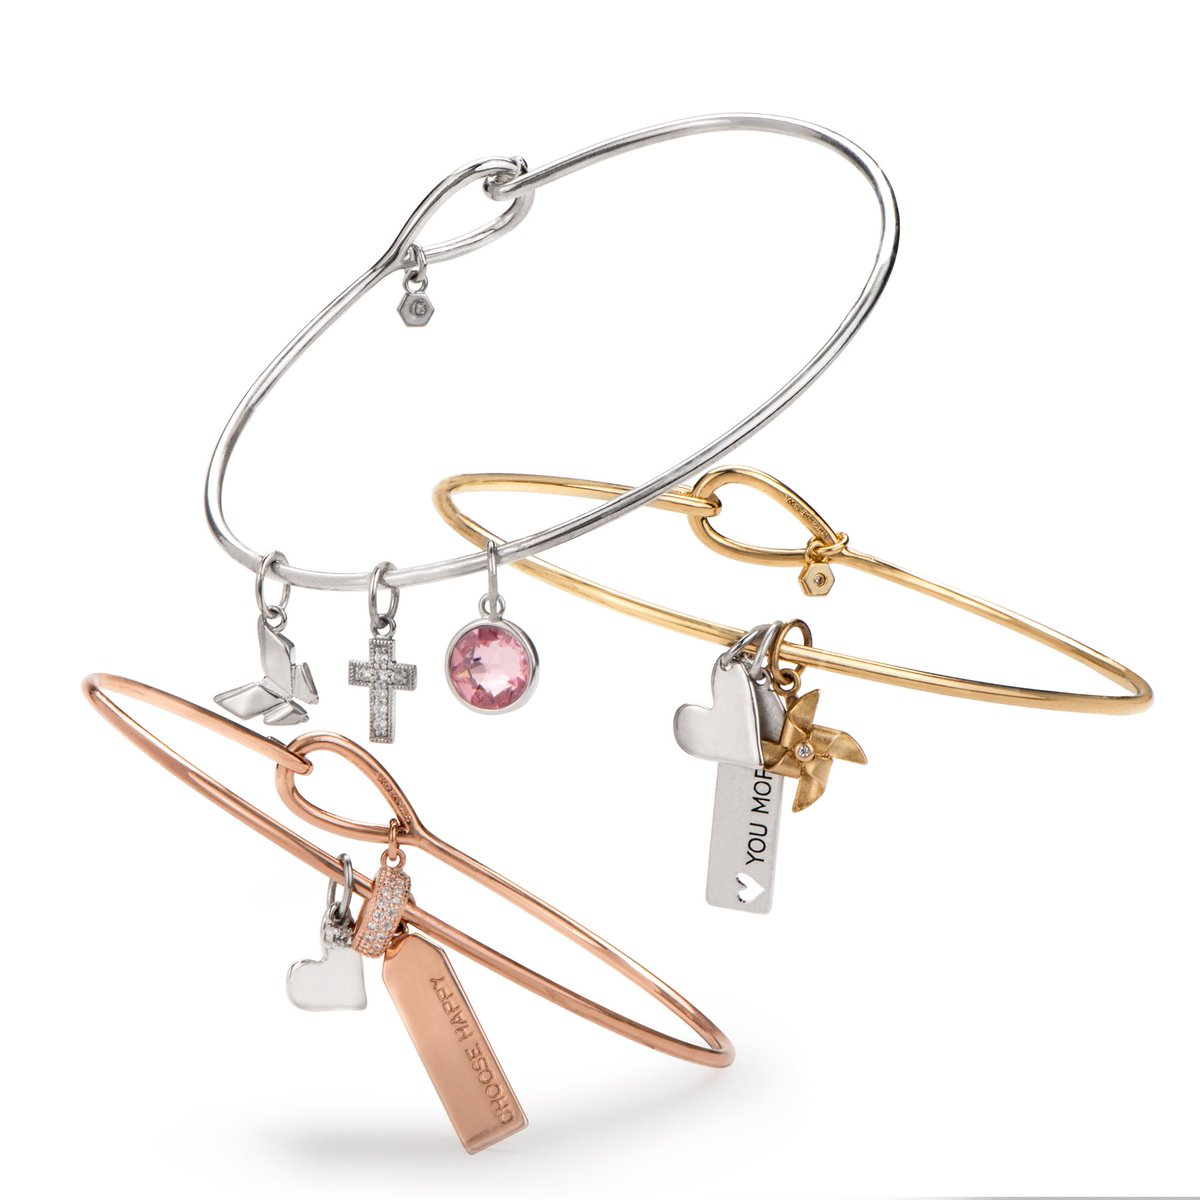 Origami Owl On Twitter Get A Core Bangle Free With Every Purchase